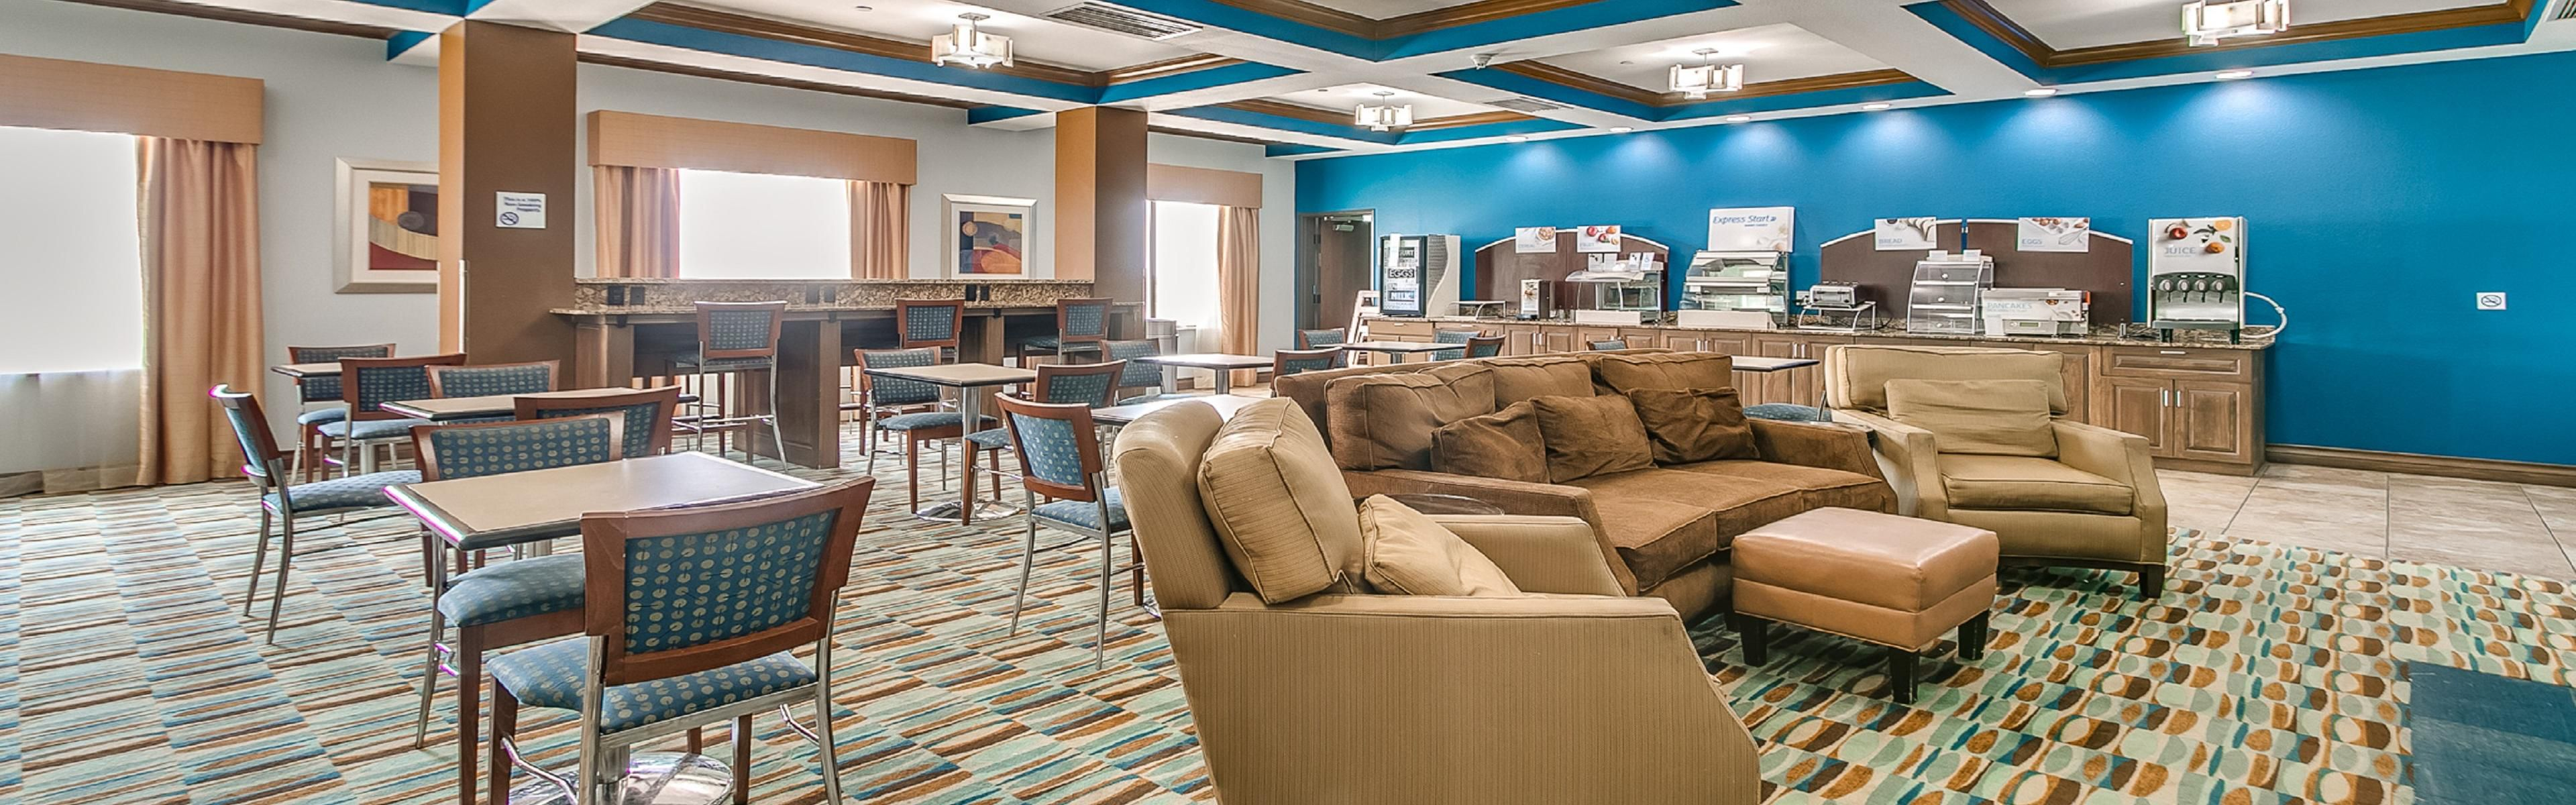 Holiday Inn Express & Suites Lubbock Southwest - Wolfforth image 3